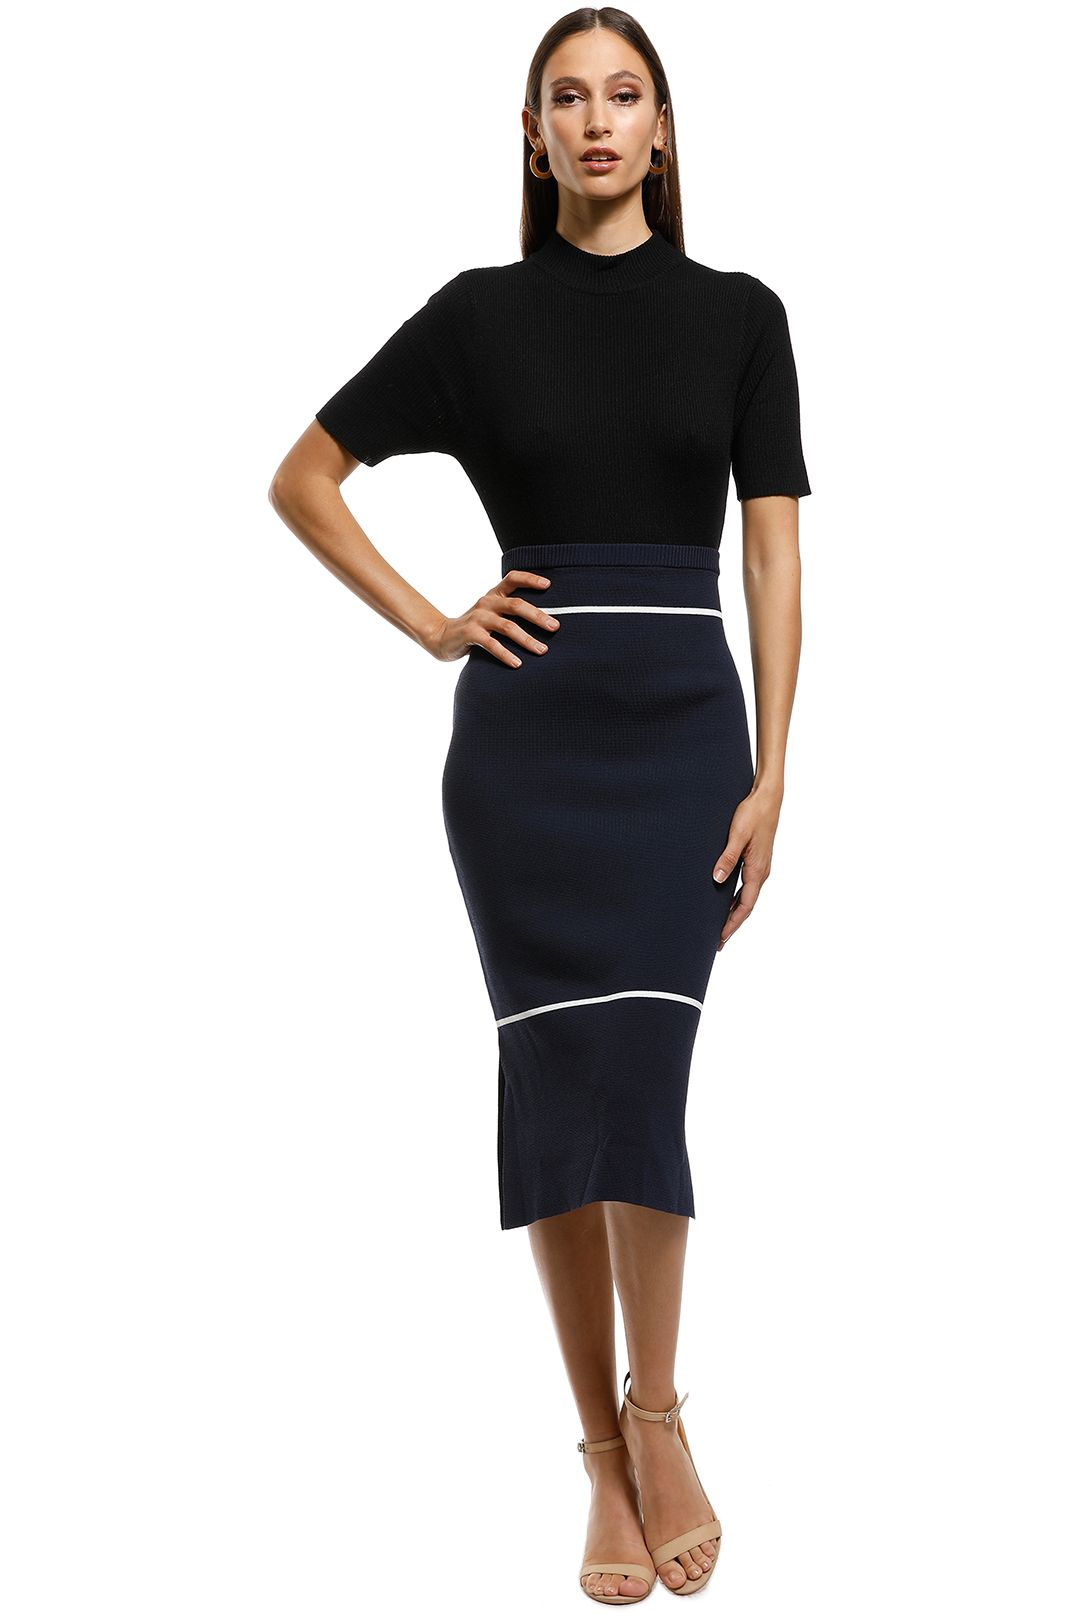 Saints The Label - California Milano Knit Skirt - Navy - Front